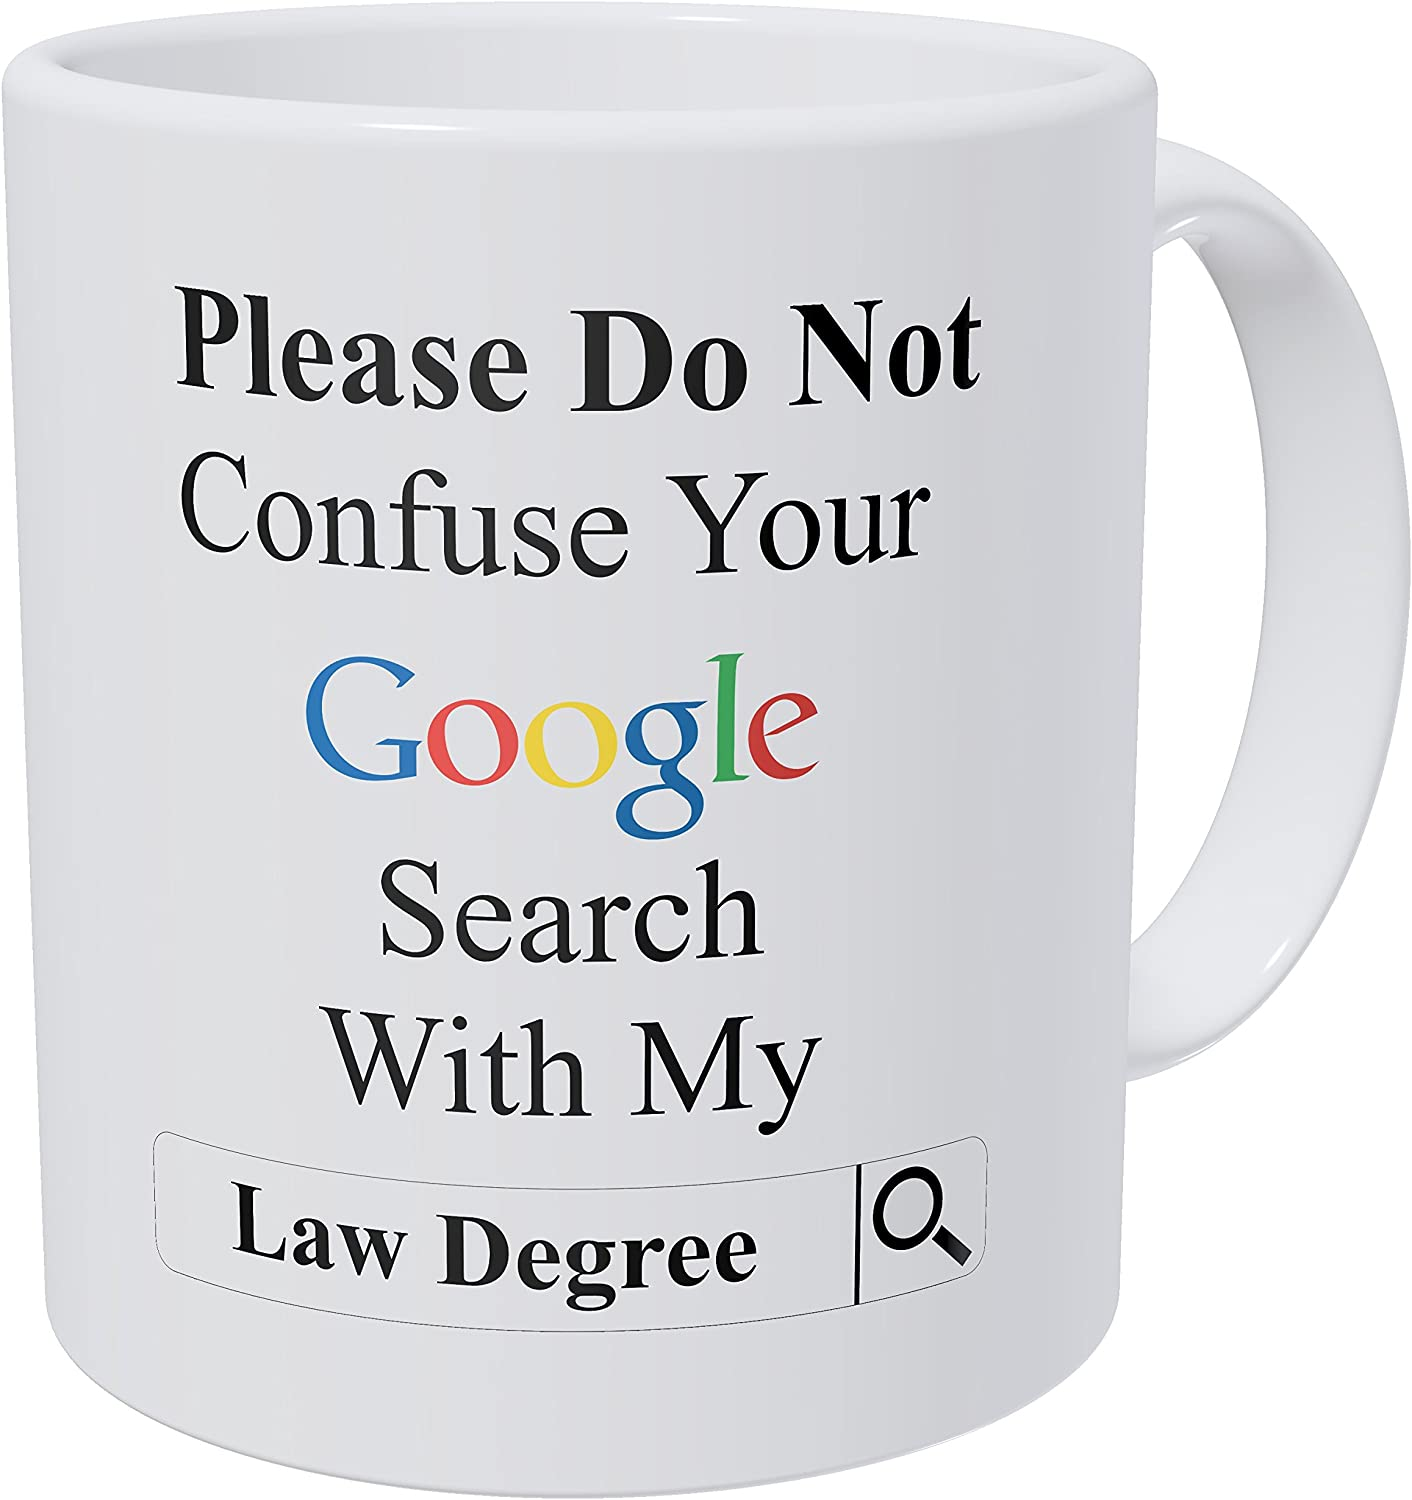 Wampumtuk Please Do Not Confuse Your Milwaukee Mall Directly managed store Law D Google My with Search